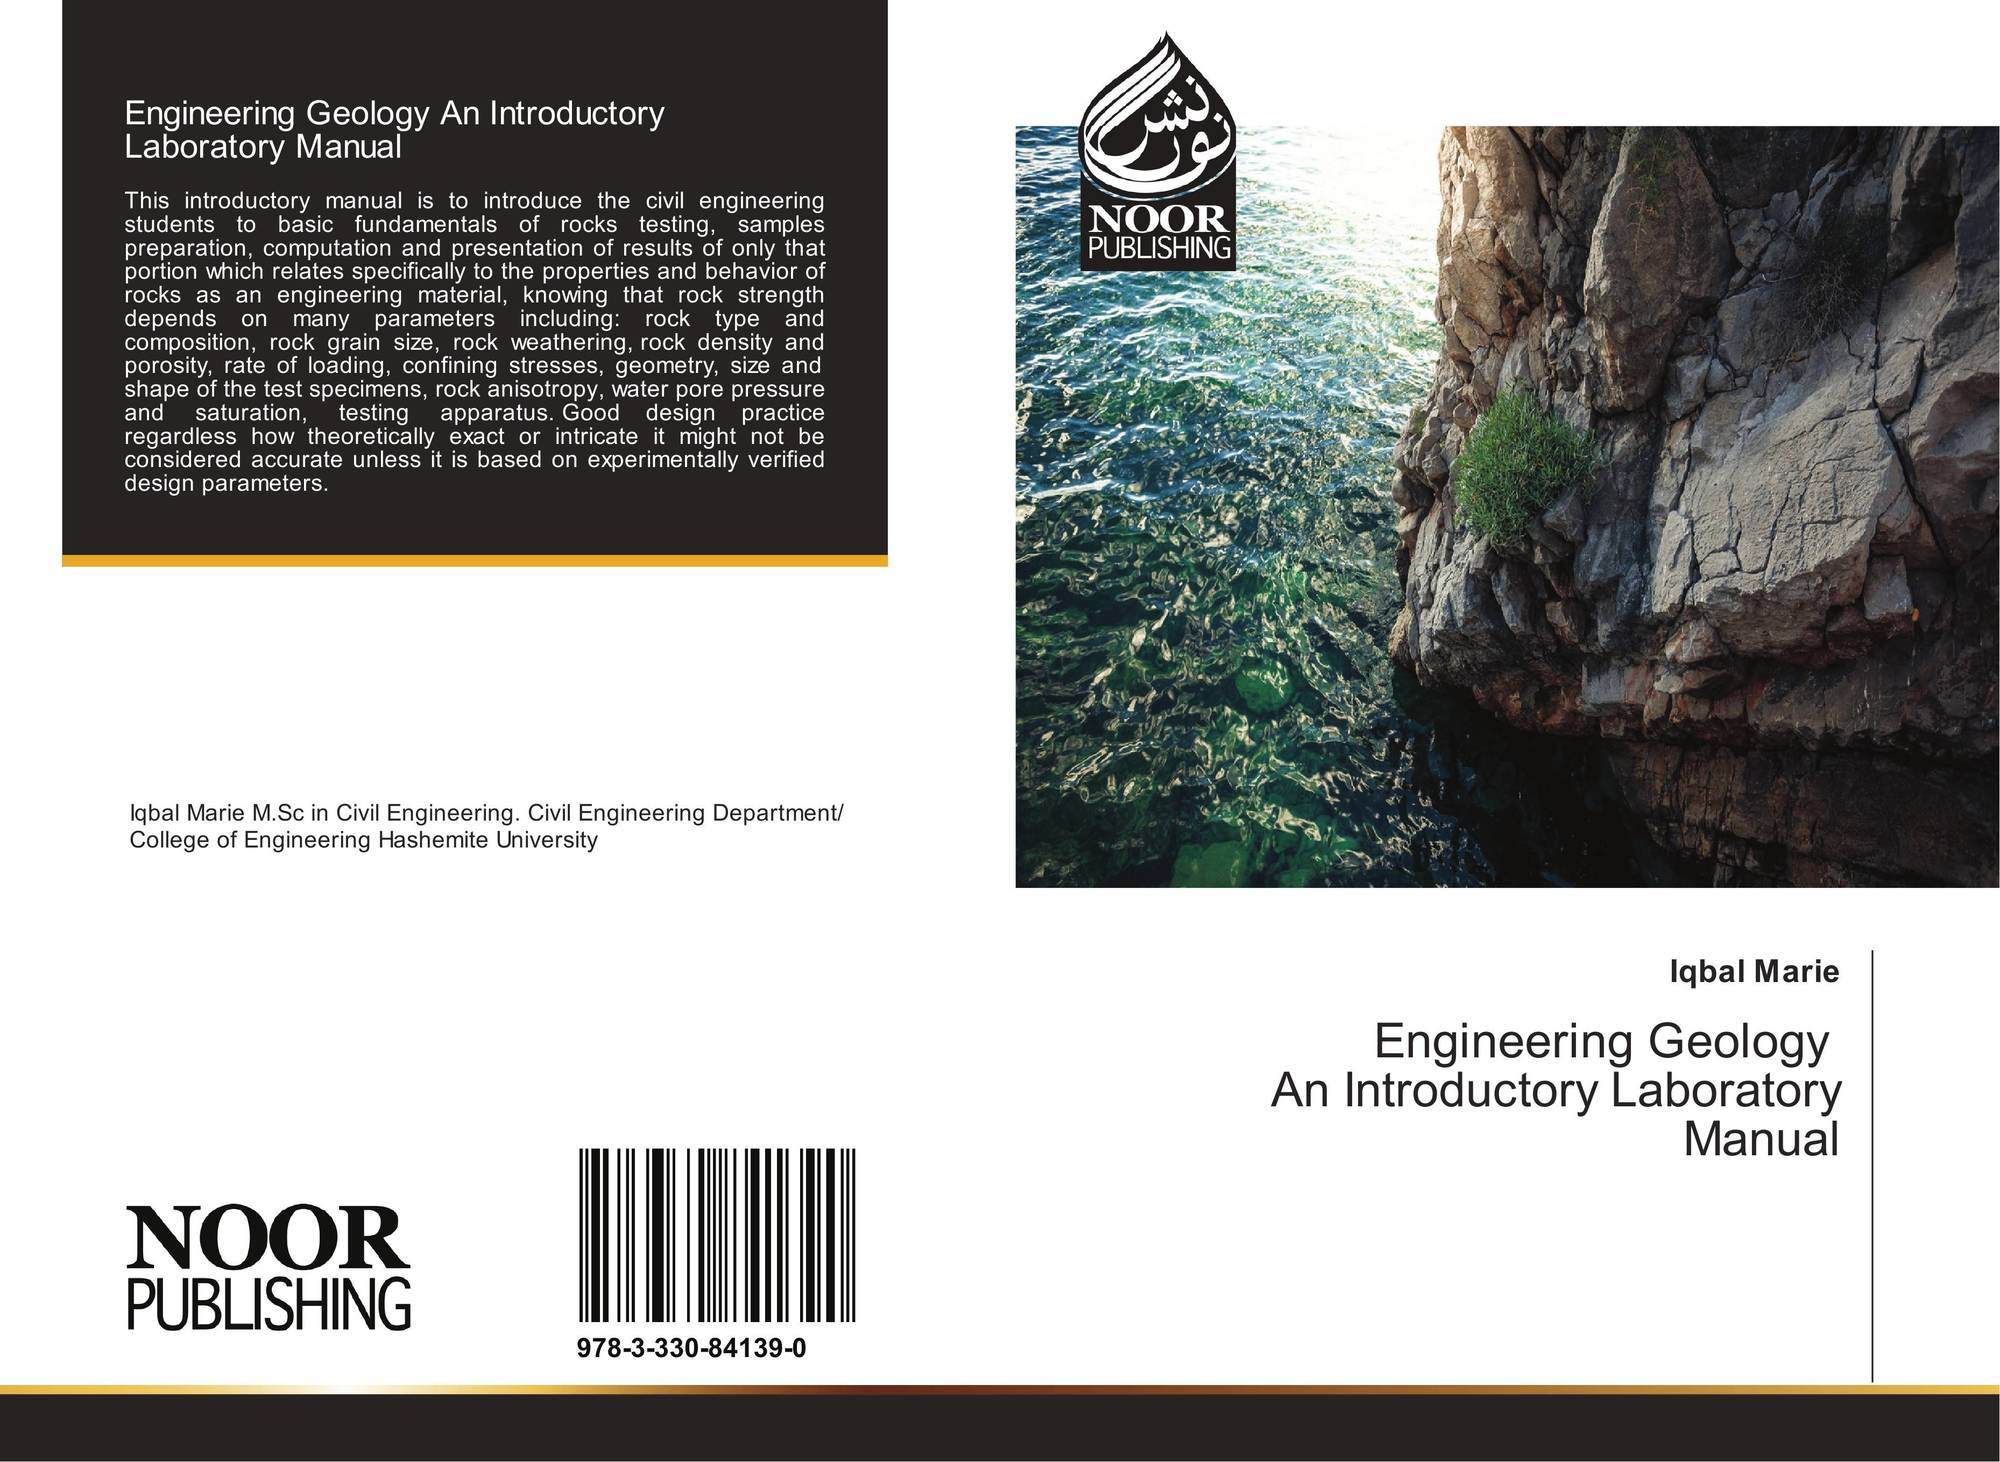 Bookcover of Engineering Geology An Introductory Laboratory Manual.  9783330841390